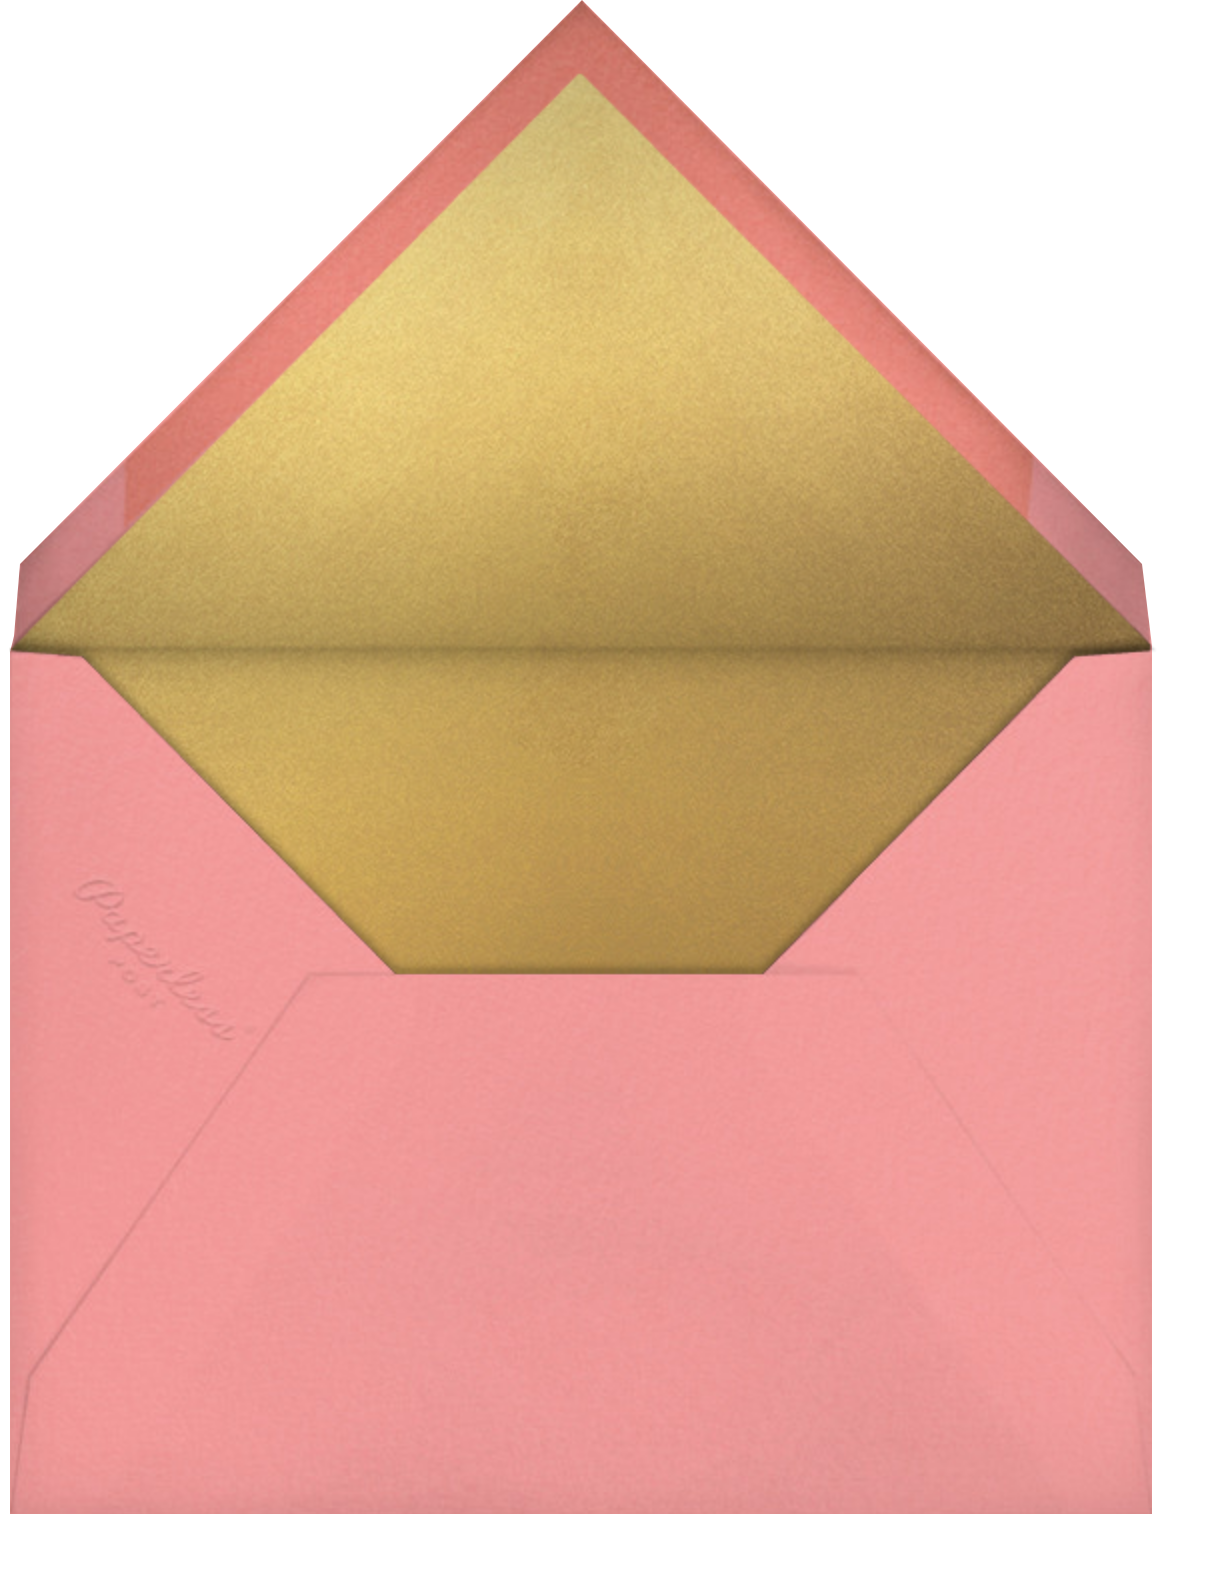 Embossed Bubbles - Paperless Post - New Year's Eve - envelope back